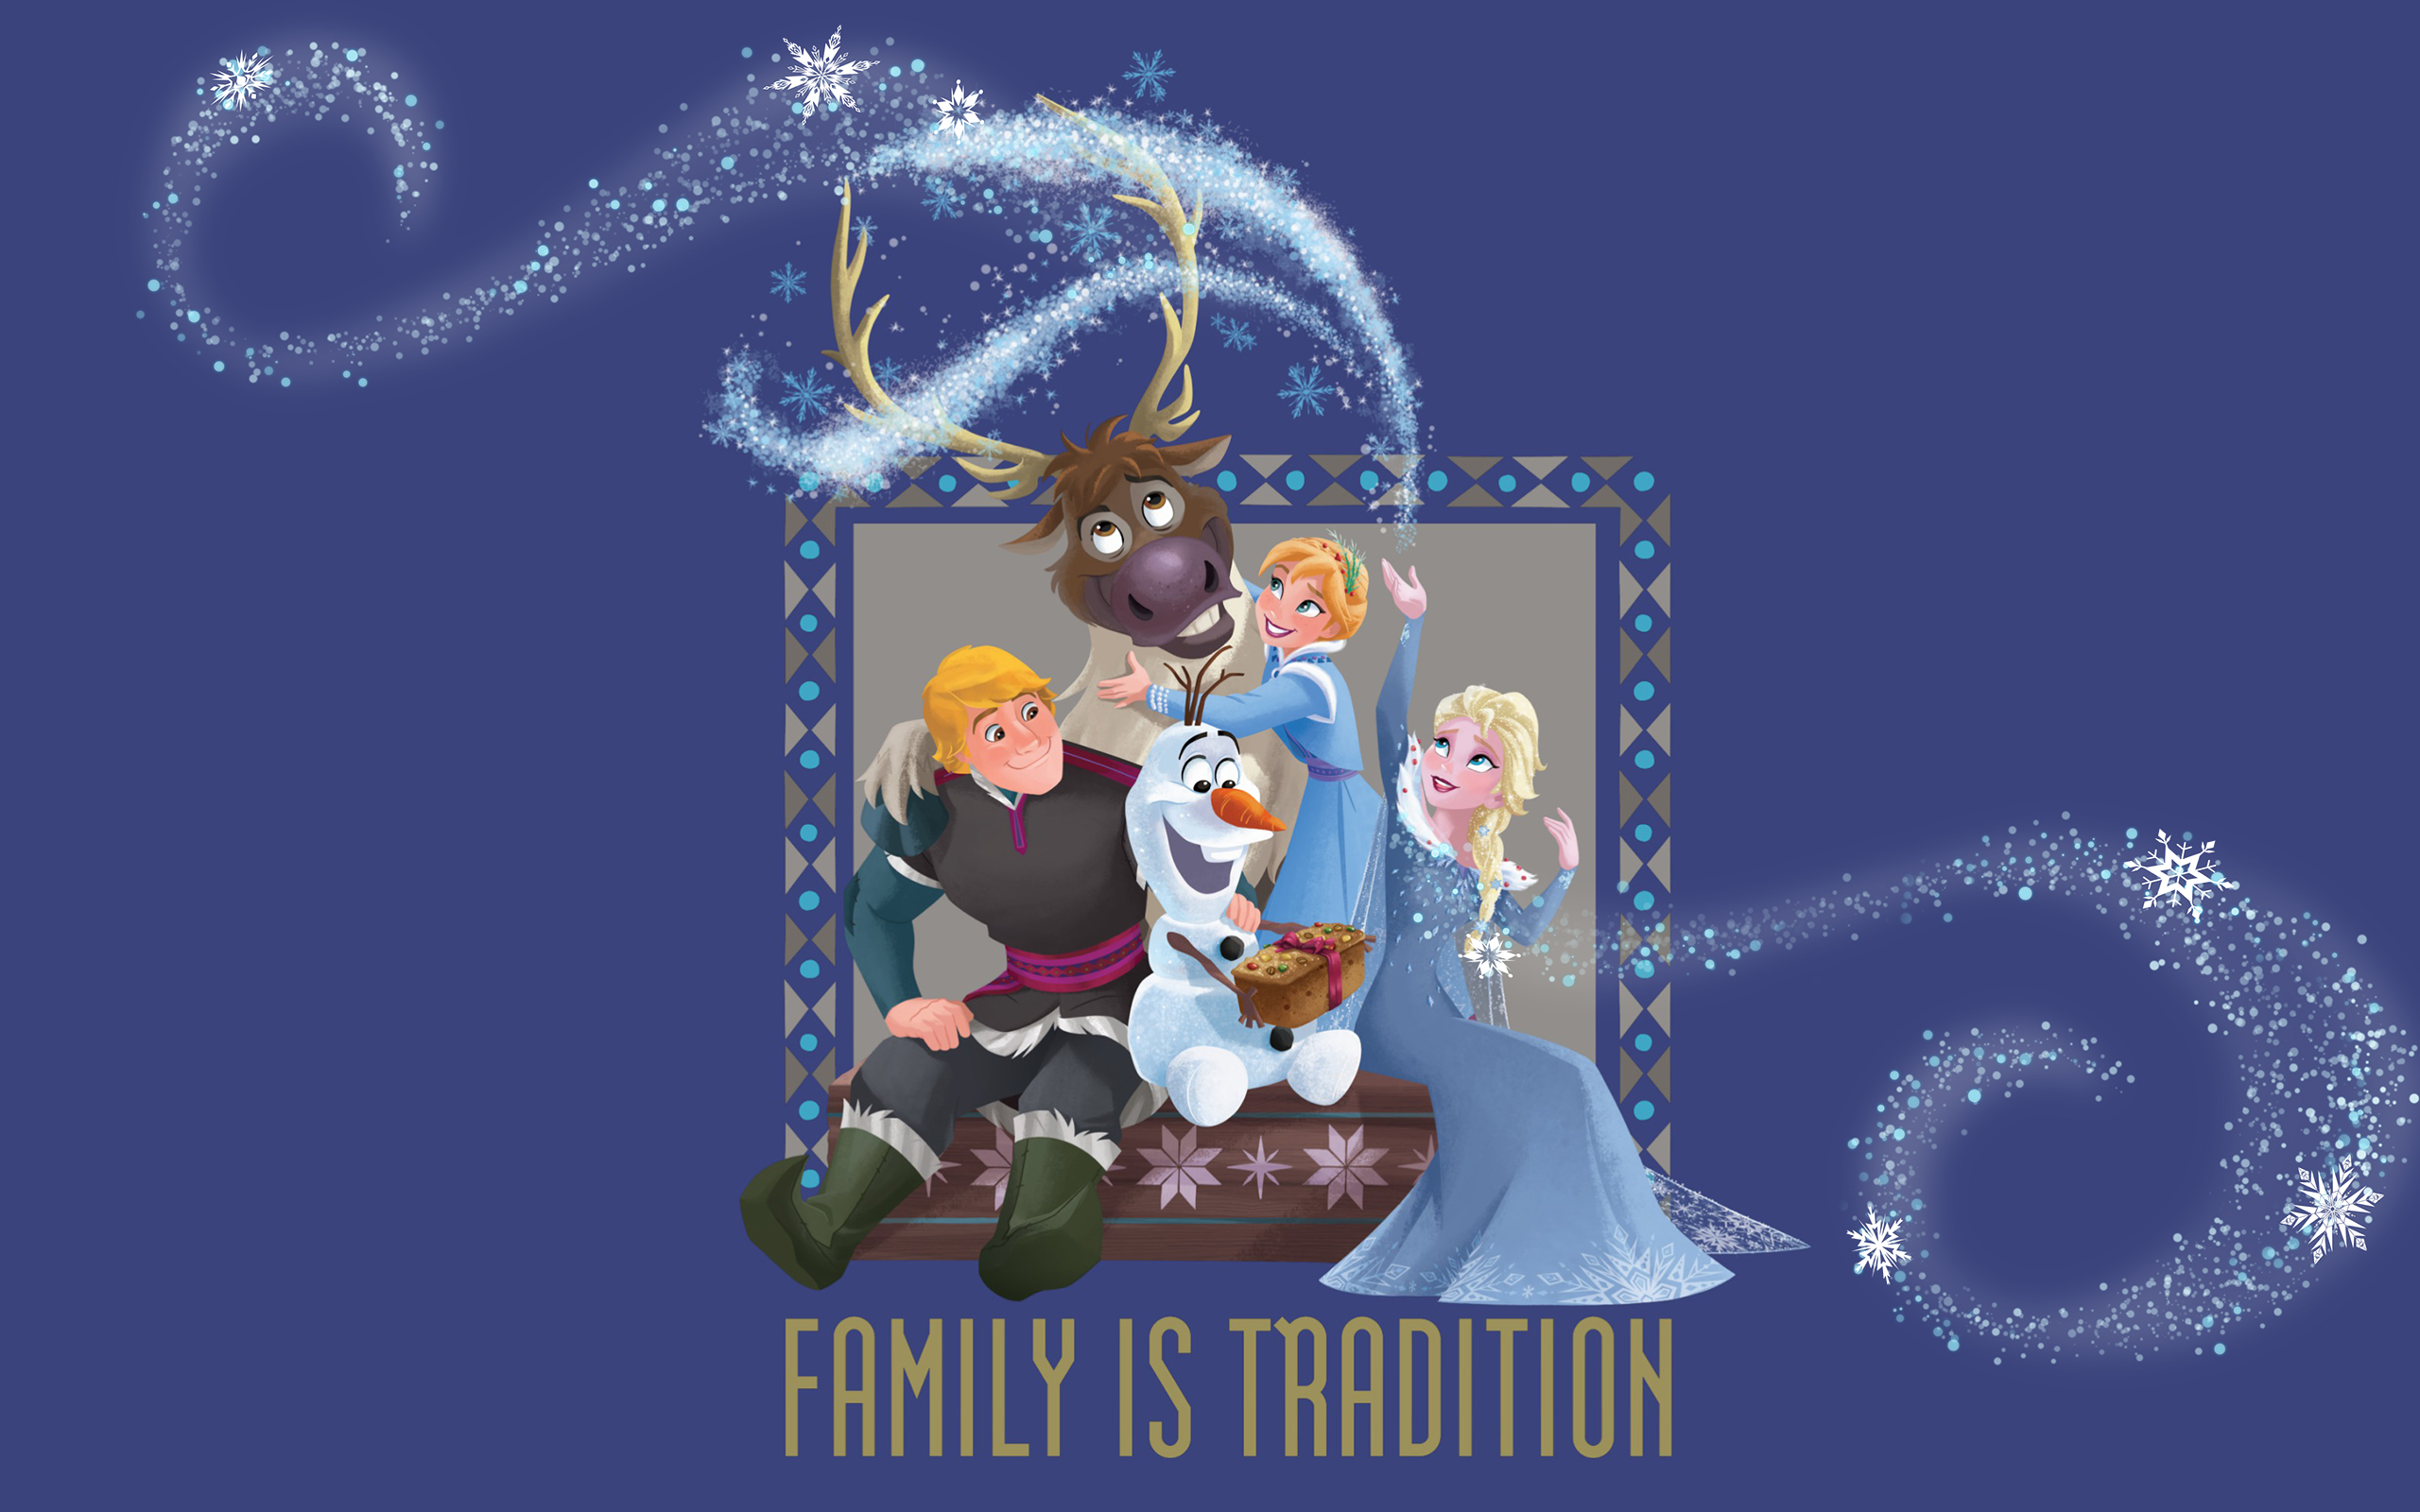 Olafu0027s Frozen Adventure new wallpapers for winter Holidays